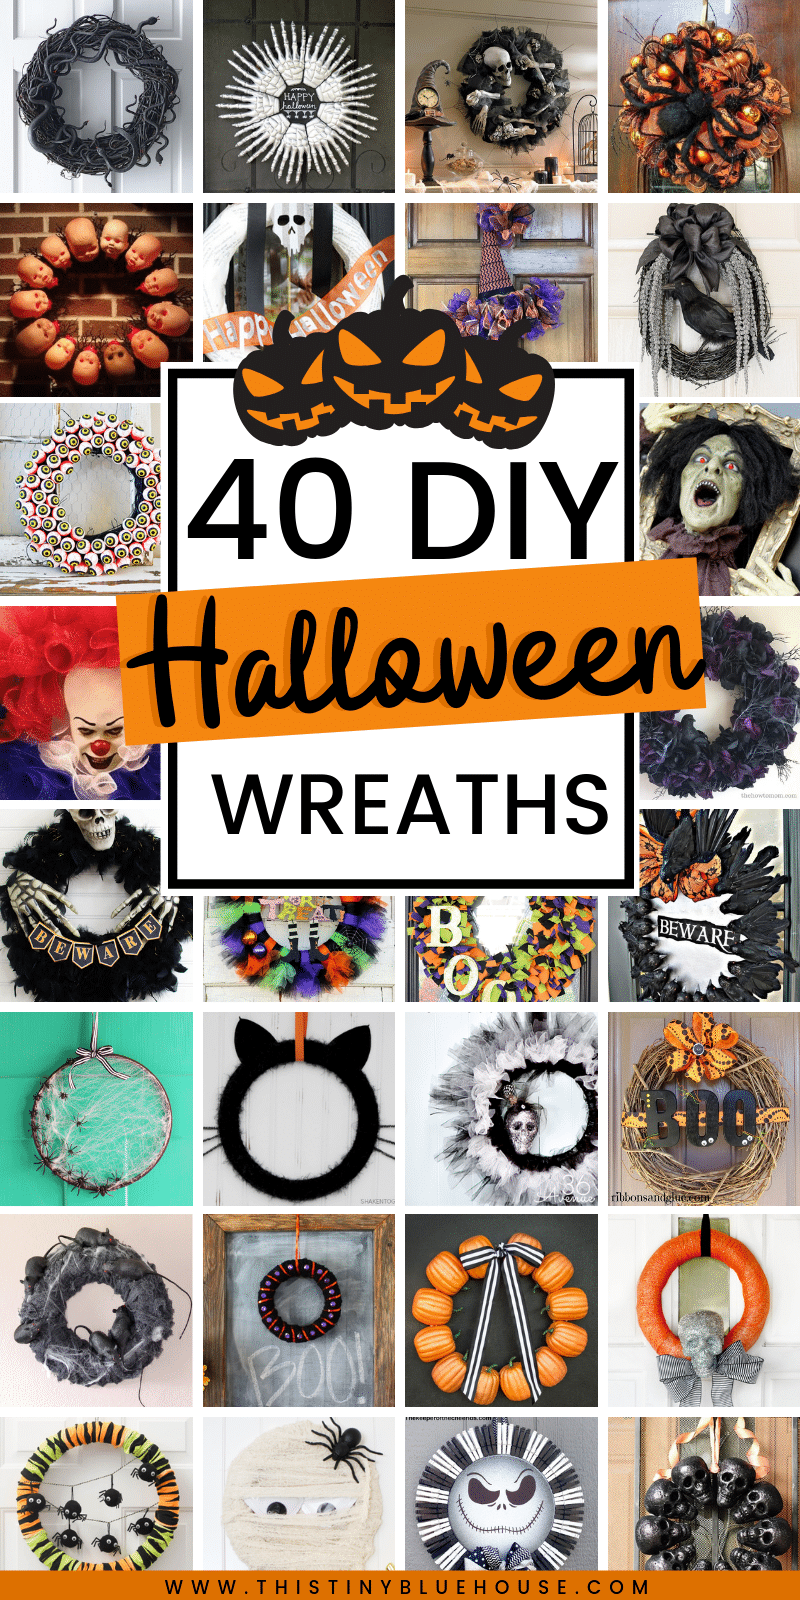 Here are 40 of the absolute best DIY Halloween wreaths. From cute and kid friendly to super spooky there is a wreath to fit every decor preference. #DIYHalloweenDecor #DIYHalloweenWreath #DIYDollarStoreHalloweenWreath #EasyHalloweenWreaths #DIYHalloweenWreathIdeas